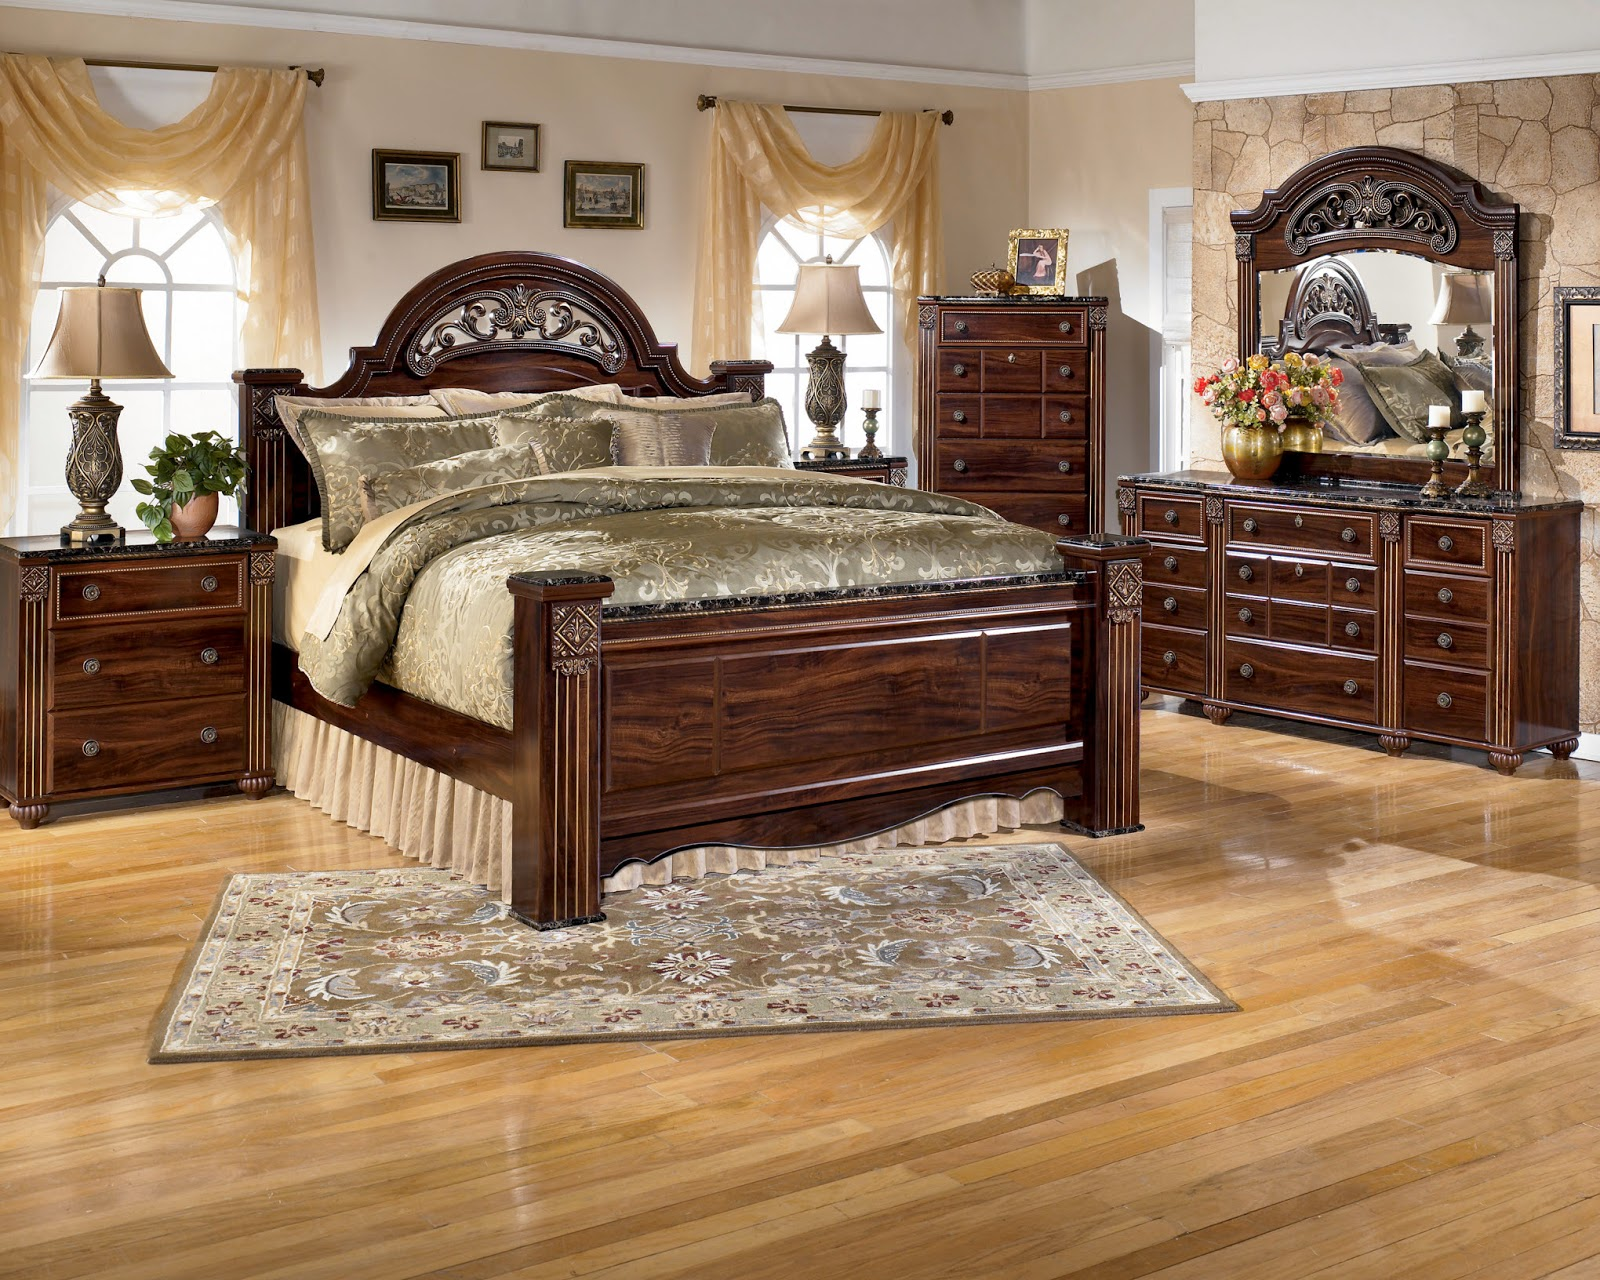 Ashley furniture bedroom sets on sale popular interior for Ashley furniture